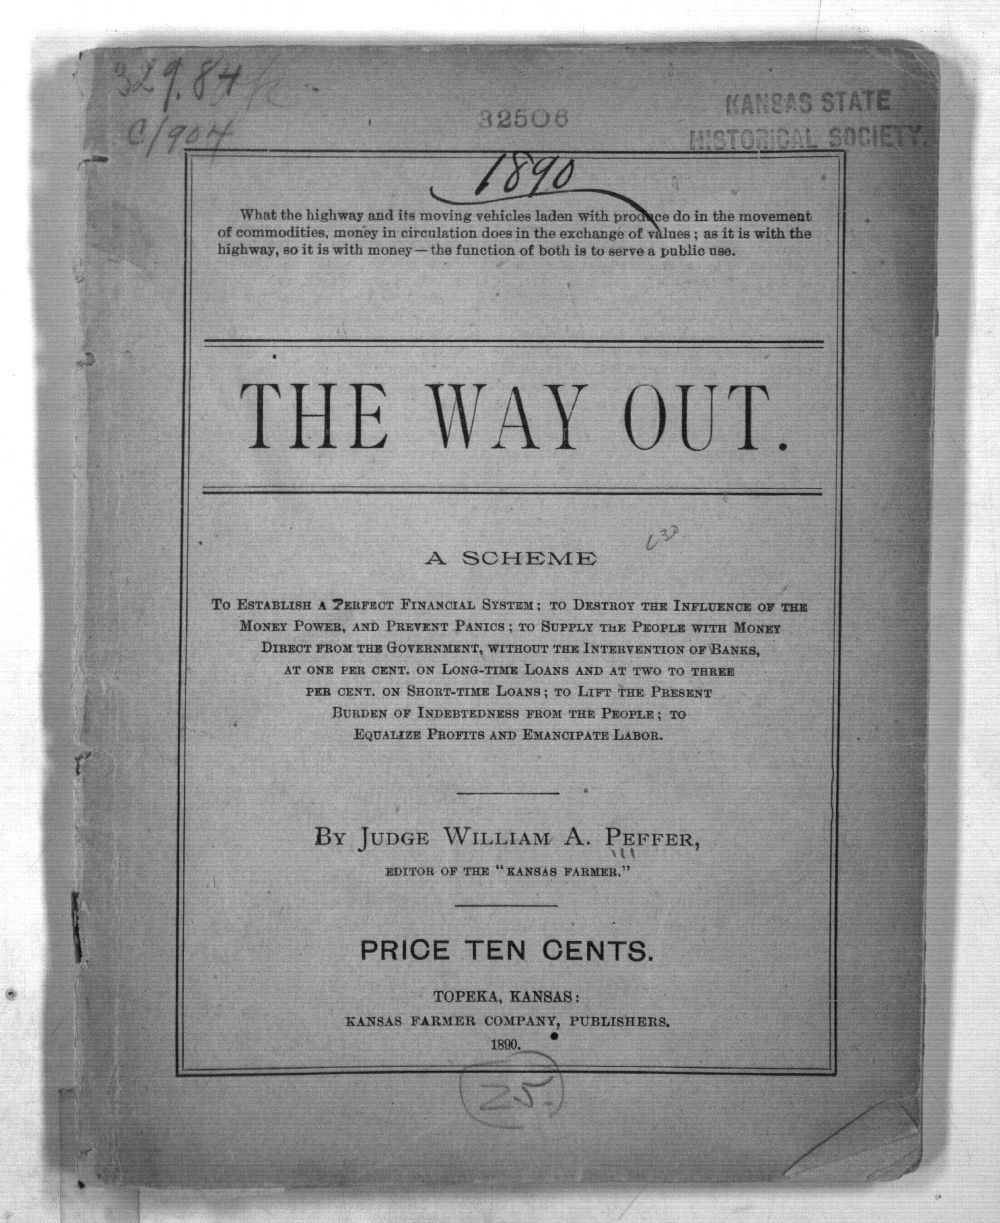 The way out:  a scheme to establish a perfect financial system; to destory the influence of the money power, and prevent panics; to supply the people with money driect from the government, without the intervention of banks, at one per cent. . . . - 1